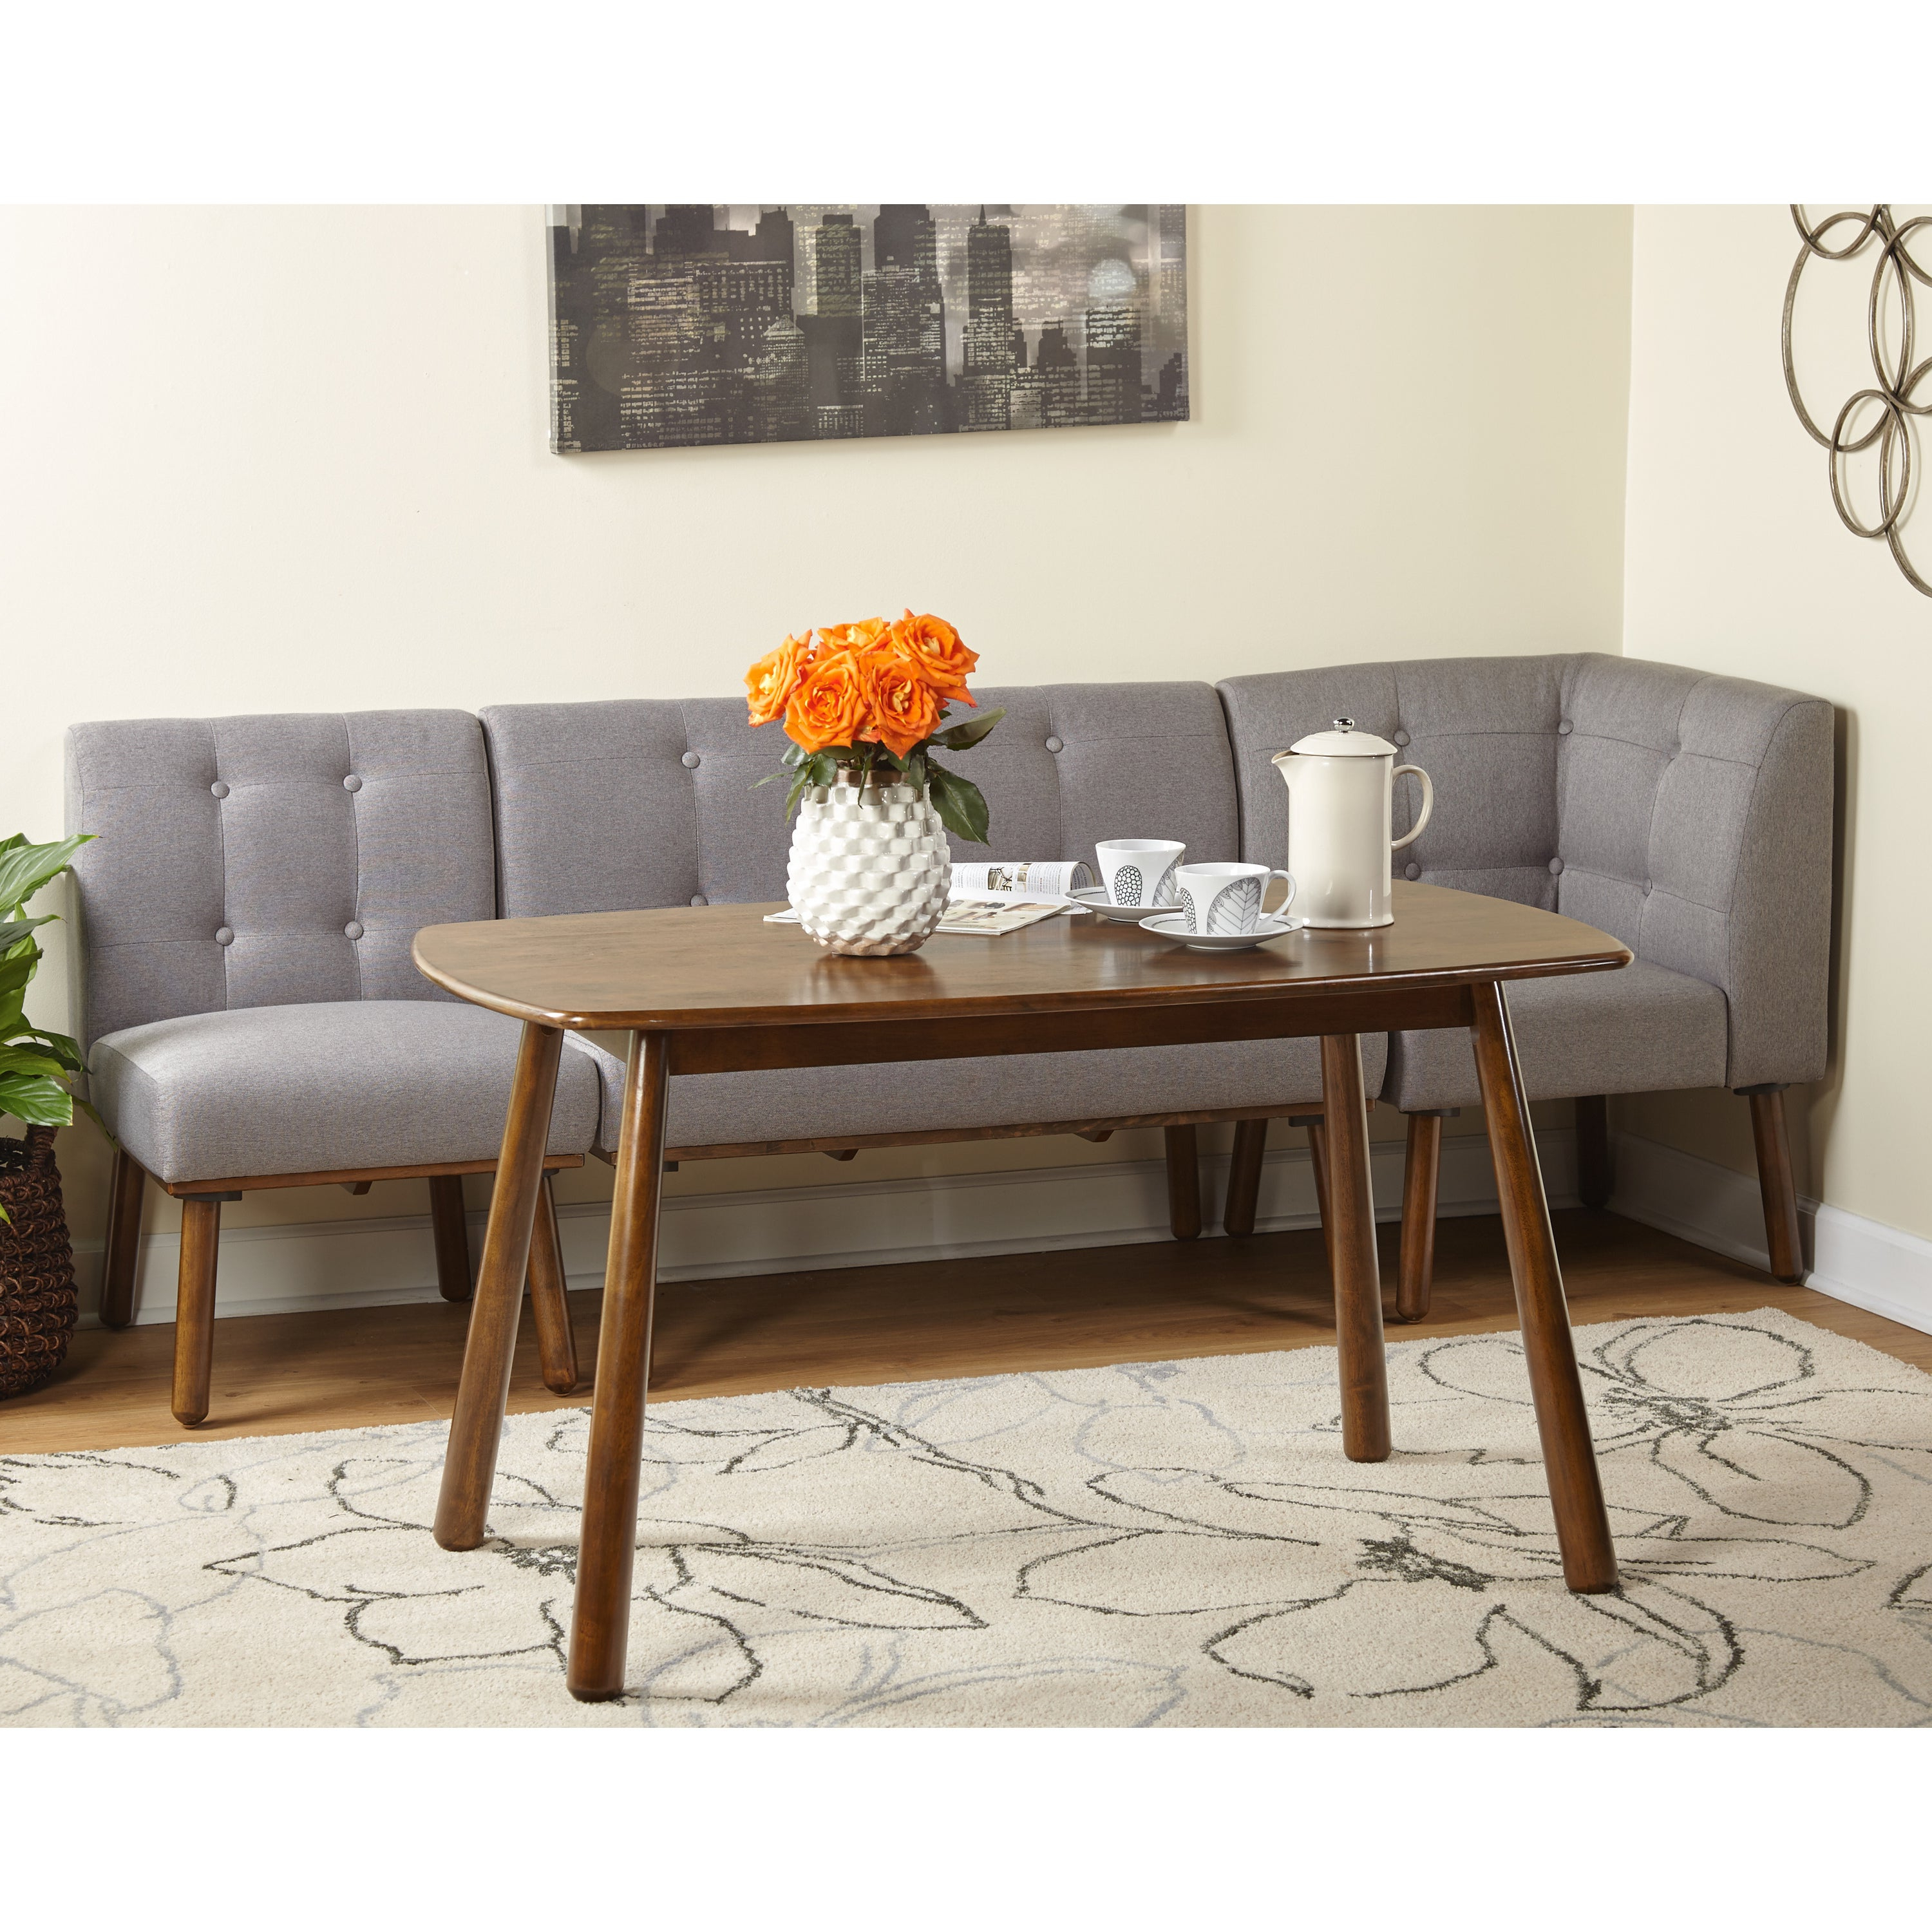 Newest Simple Living 4 Piece Playmate Nook Dining Set Inside Maloney 3 Piece Breakfast Nook Dining Sets (View 10 of 20)